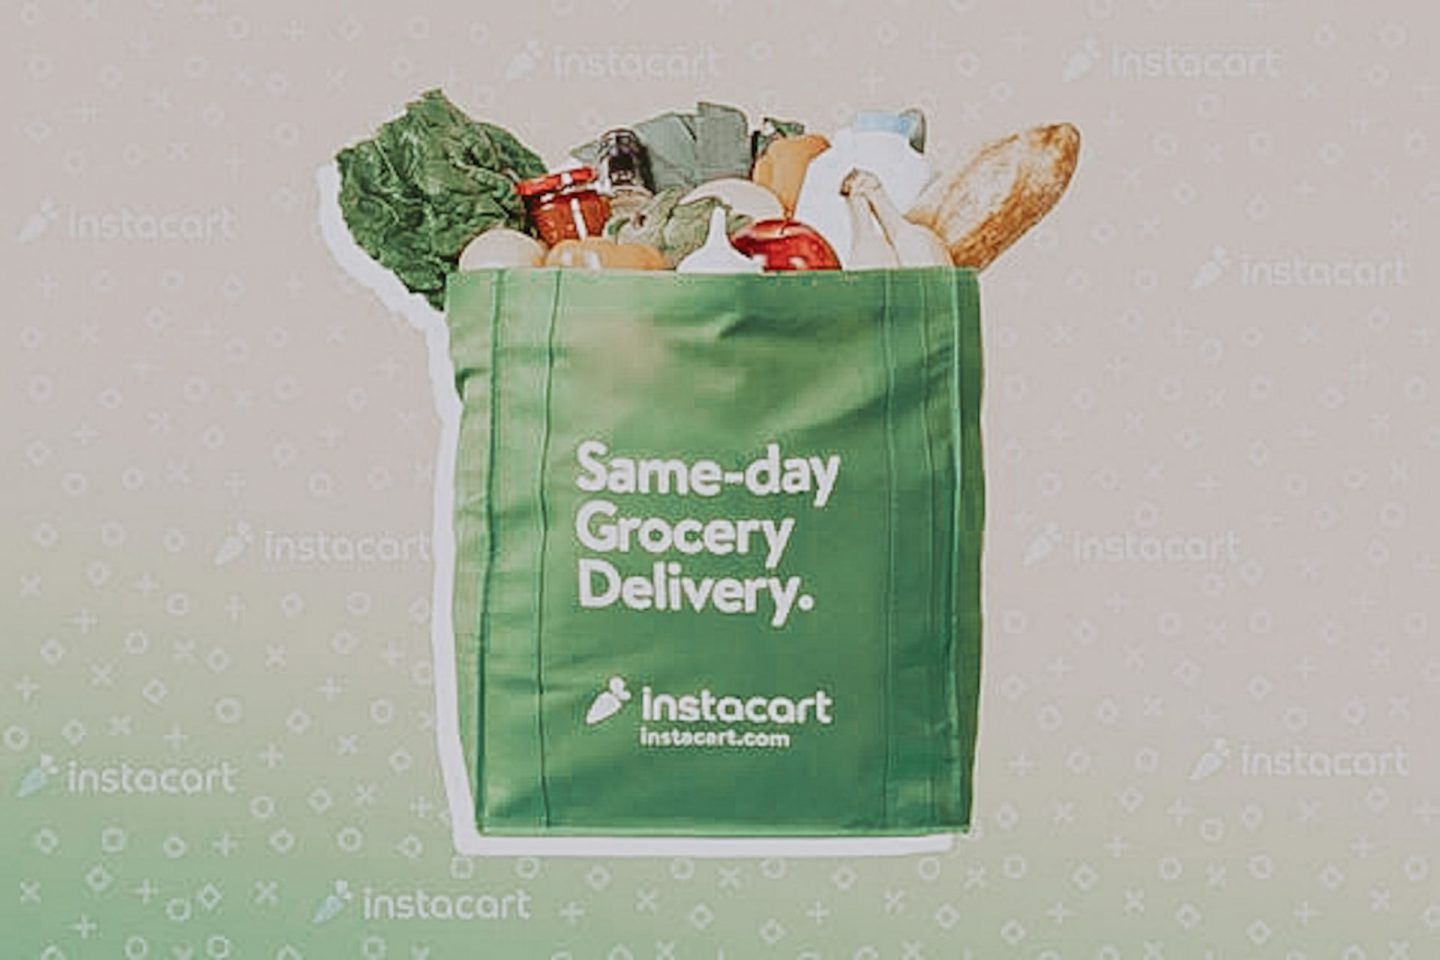 What's New in My Instacart Order This Week